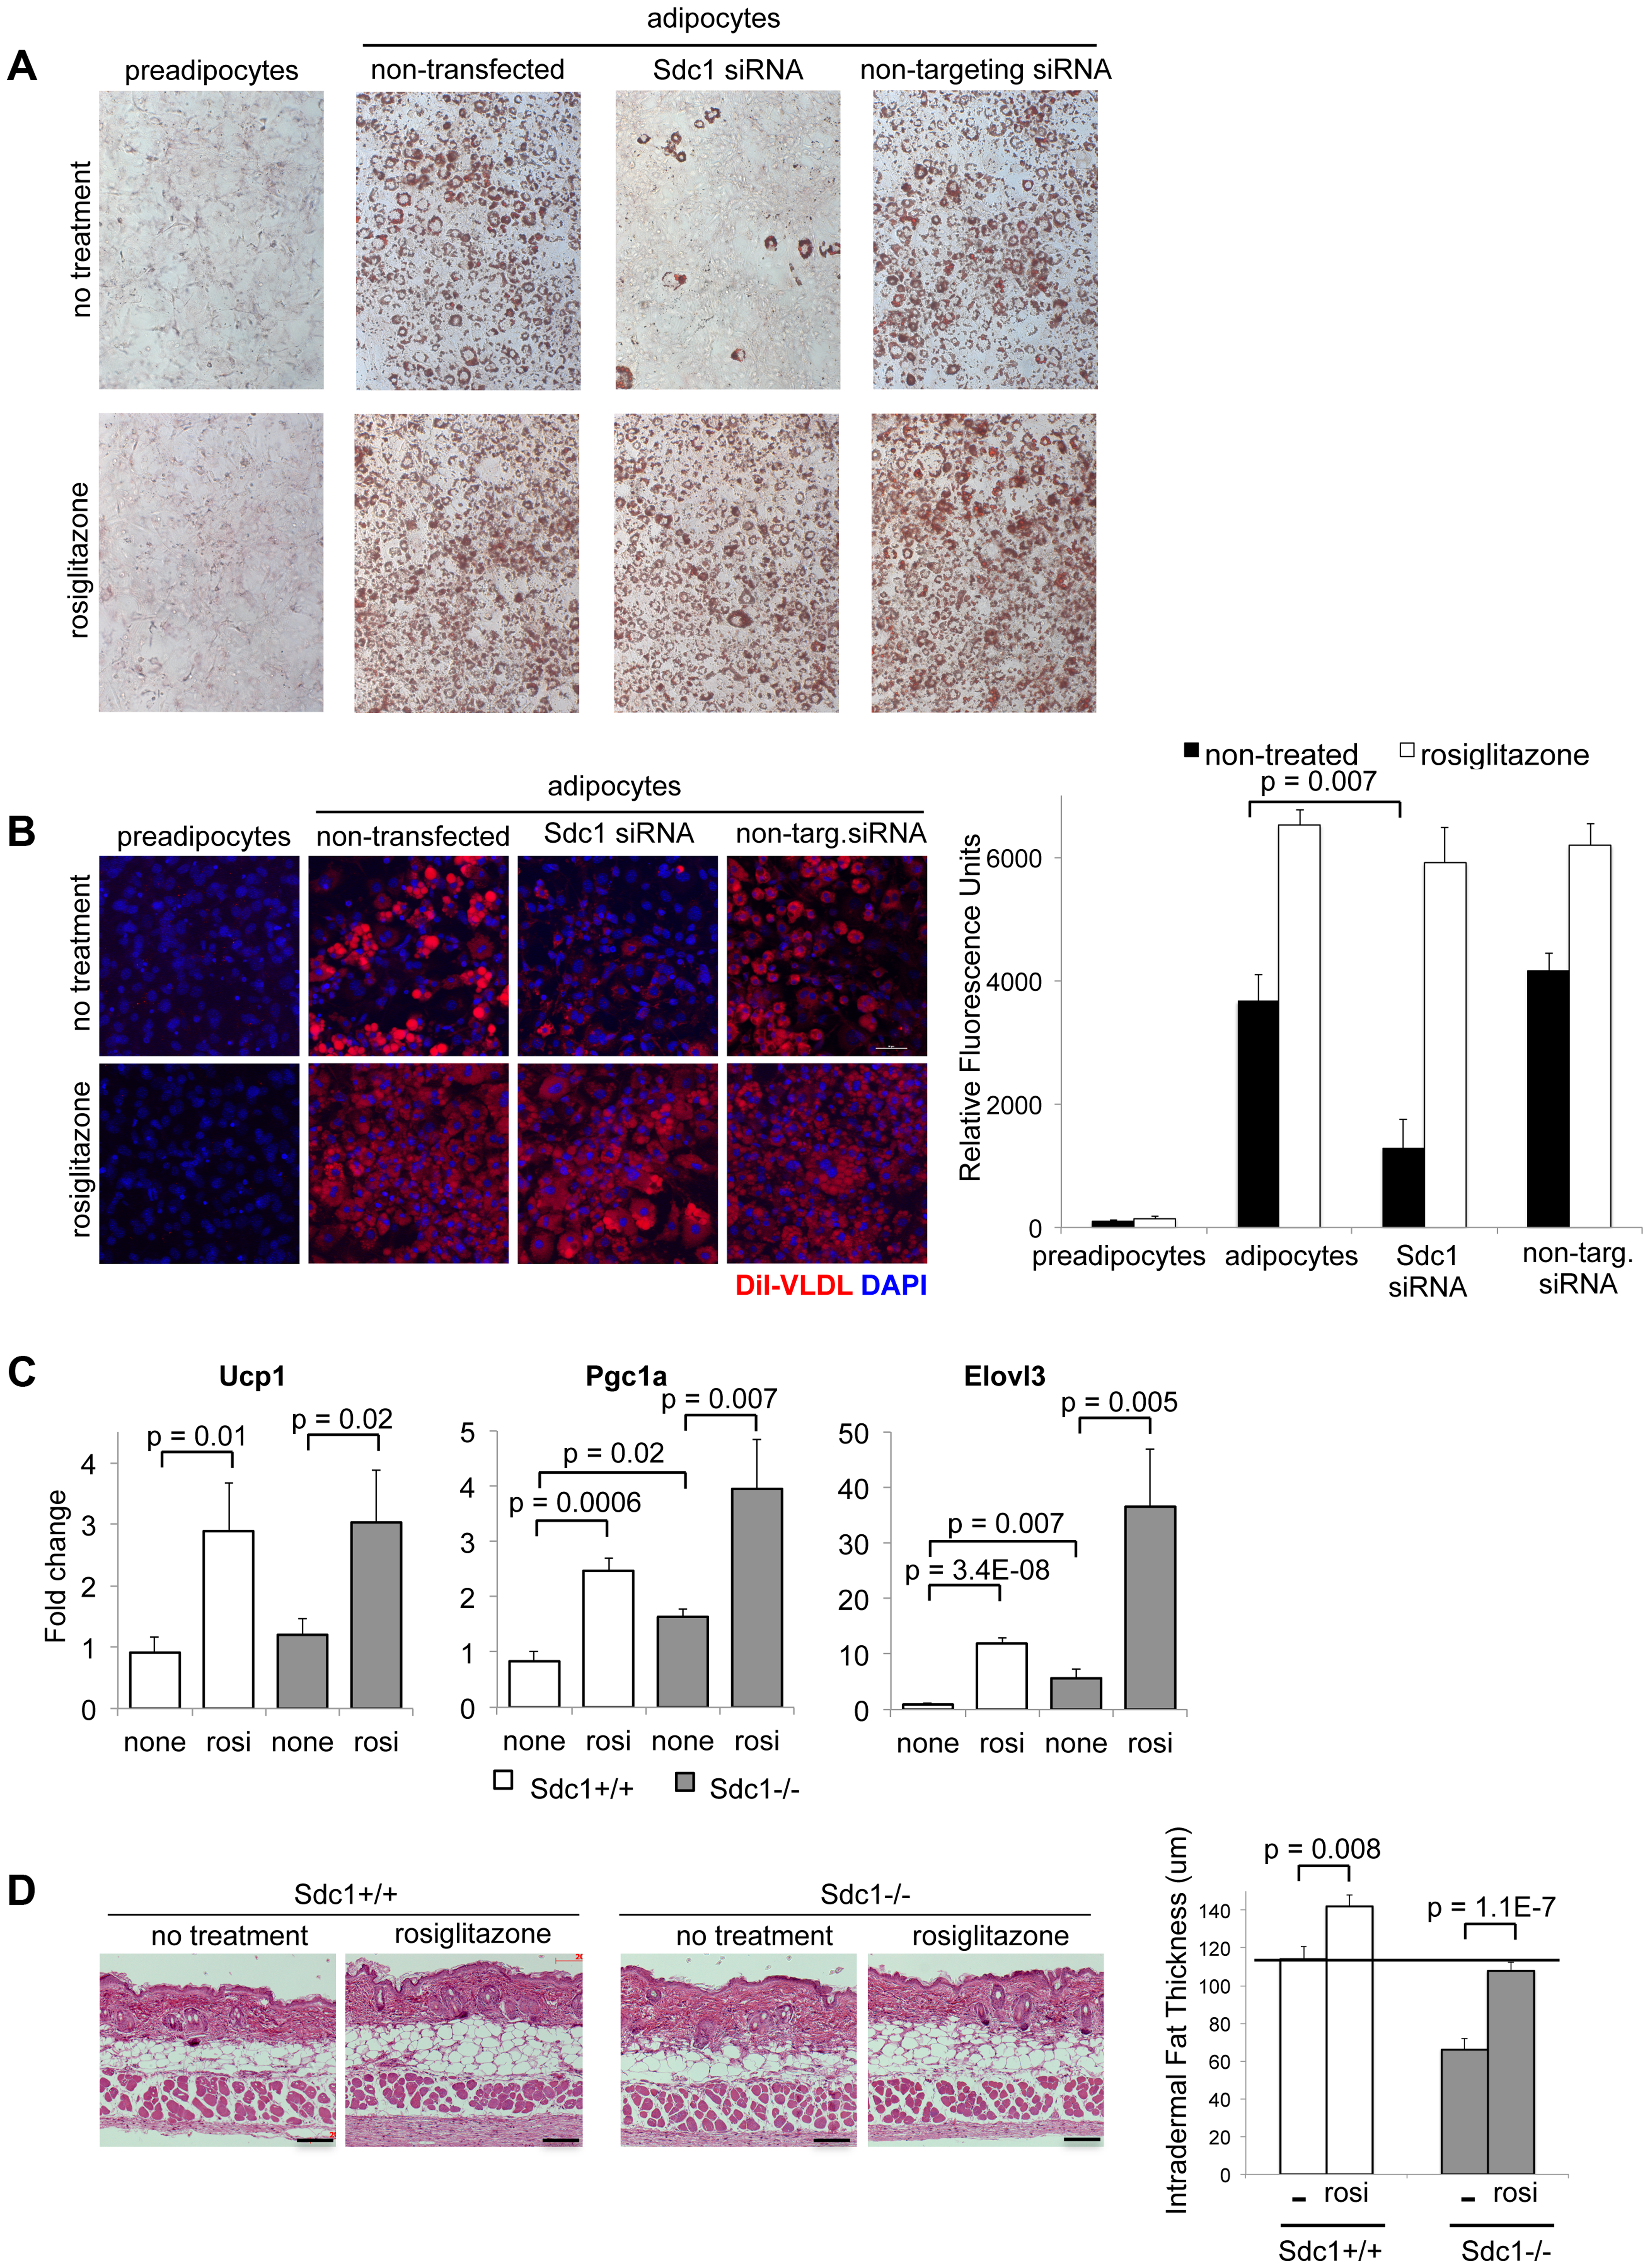 Adipocyte differentiation can be rescued <i>in vitro</i> and <i>in vivo</i> by the PPARγ agonist, rosiglitazone.